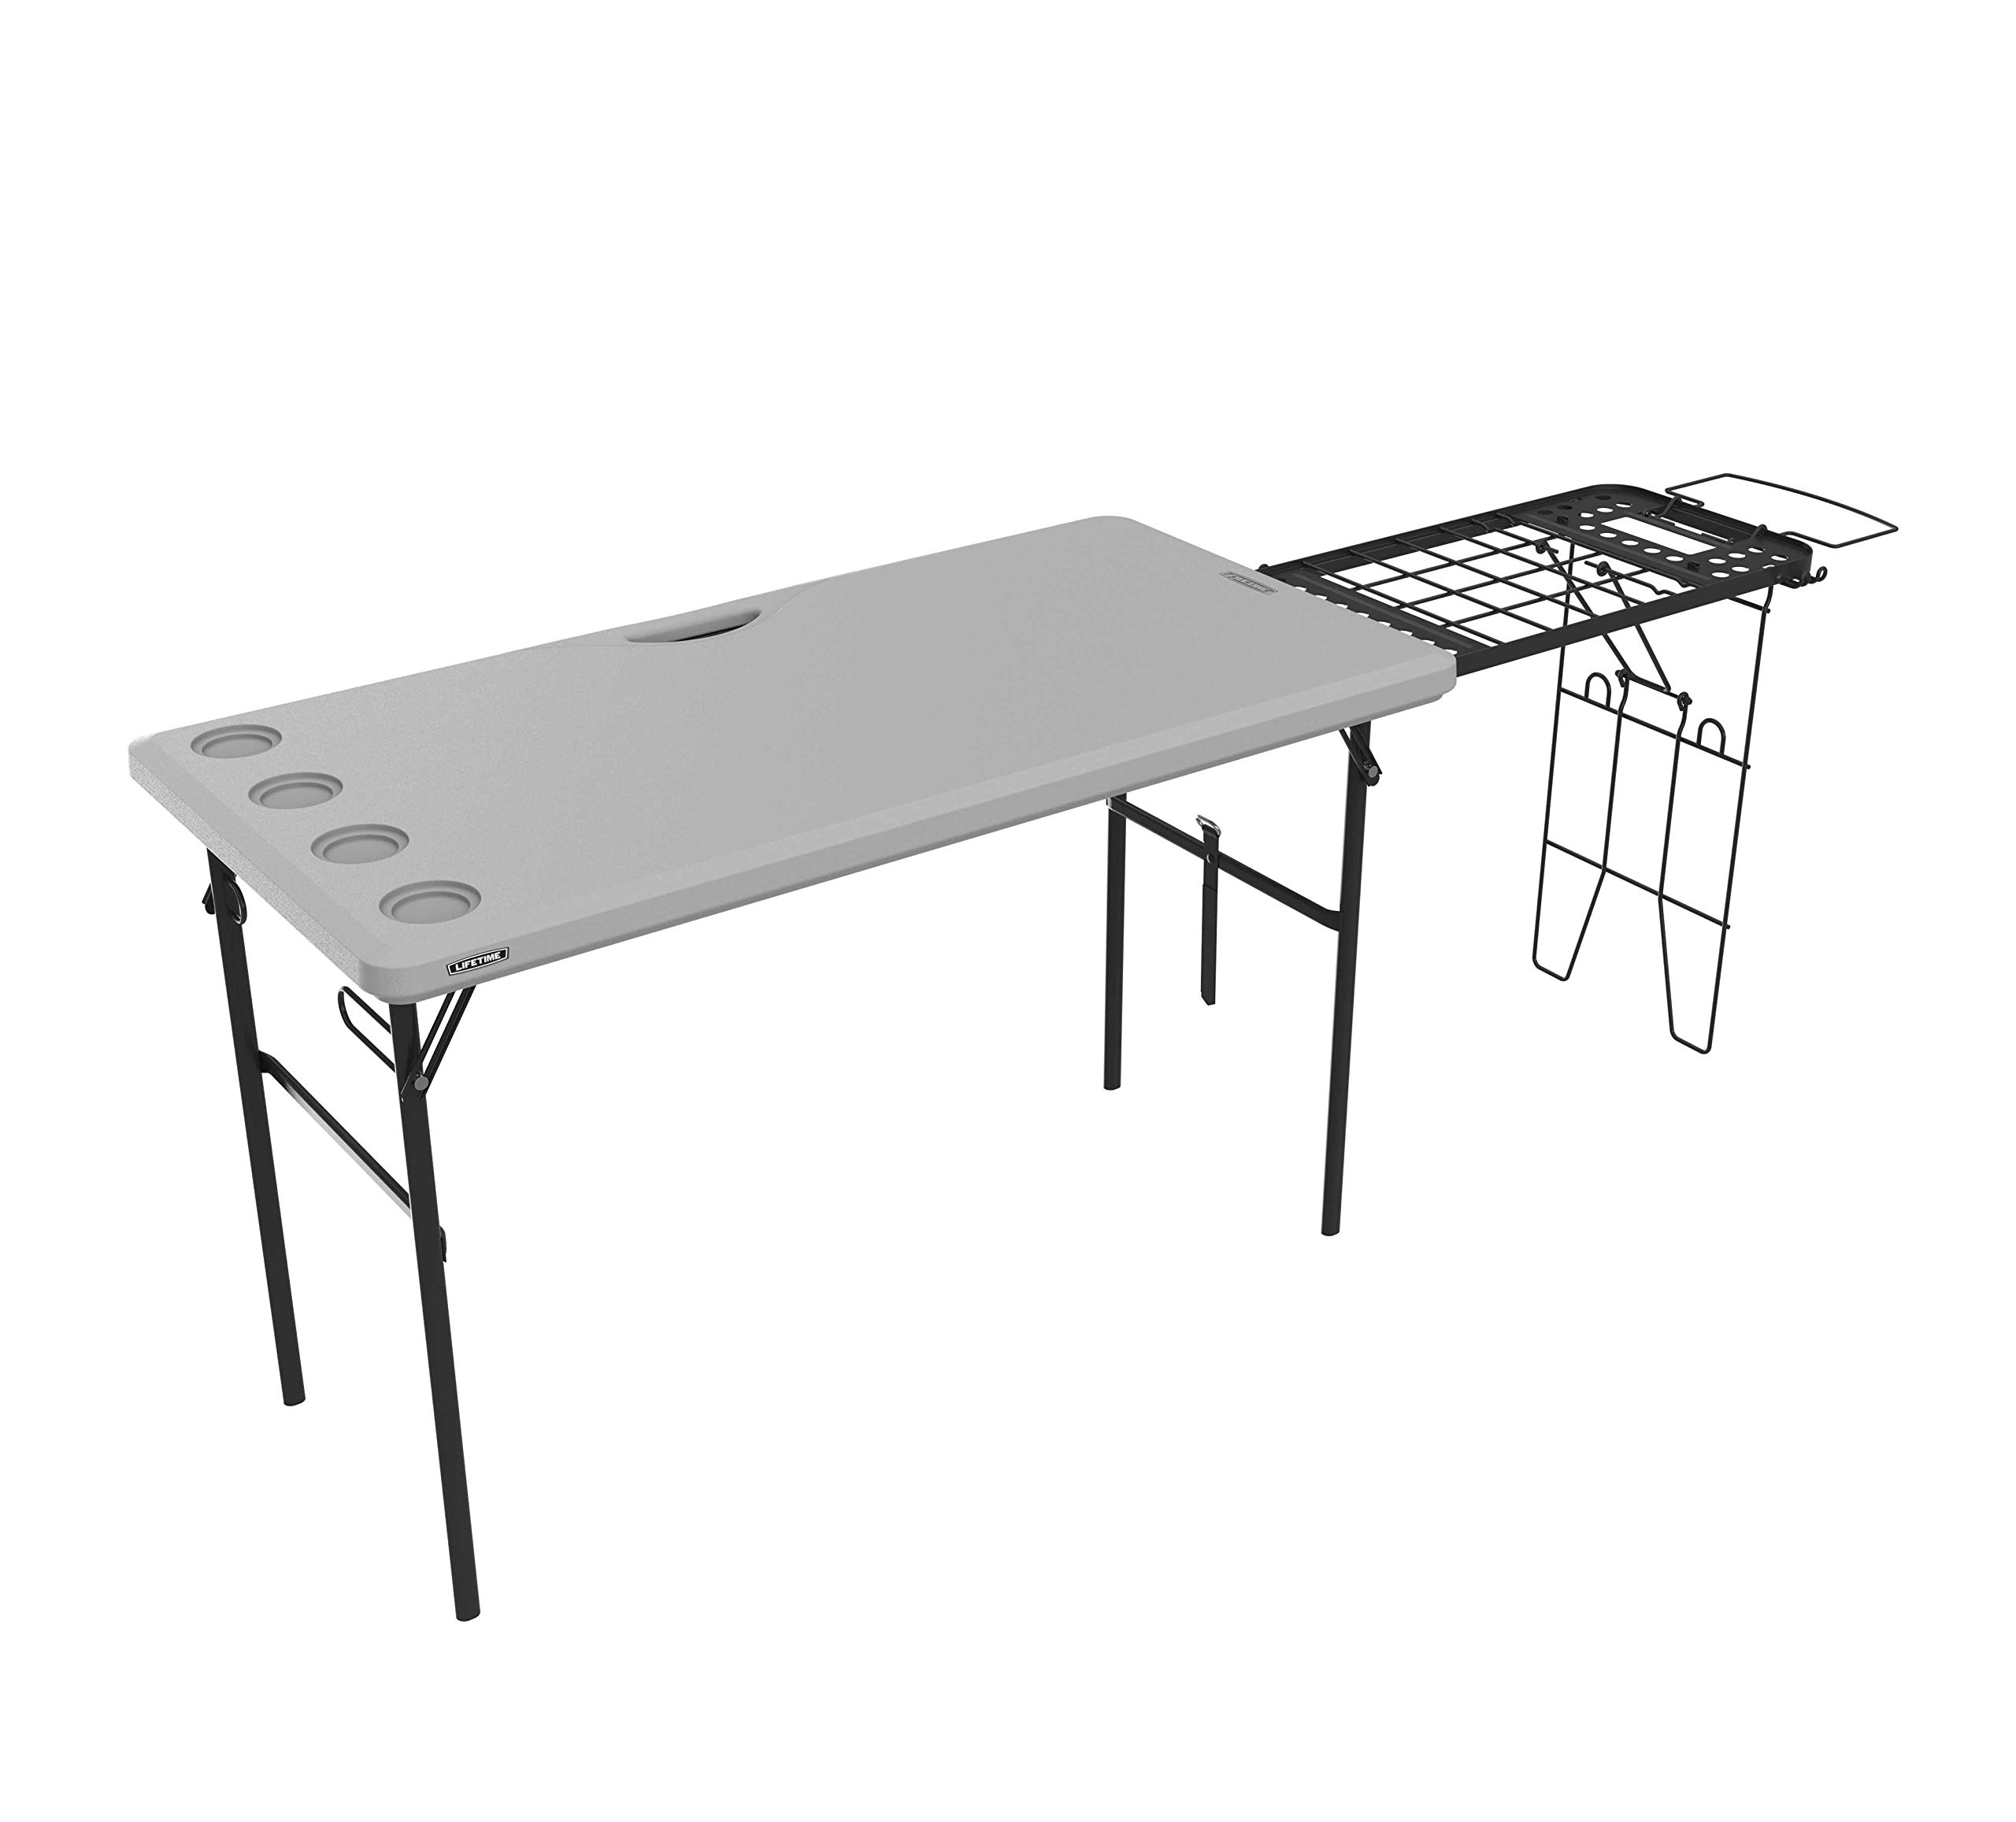 Lifetime 280813 Folding Tailgate Camp Table with Grill Rack, Gray by Lifetime